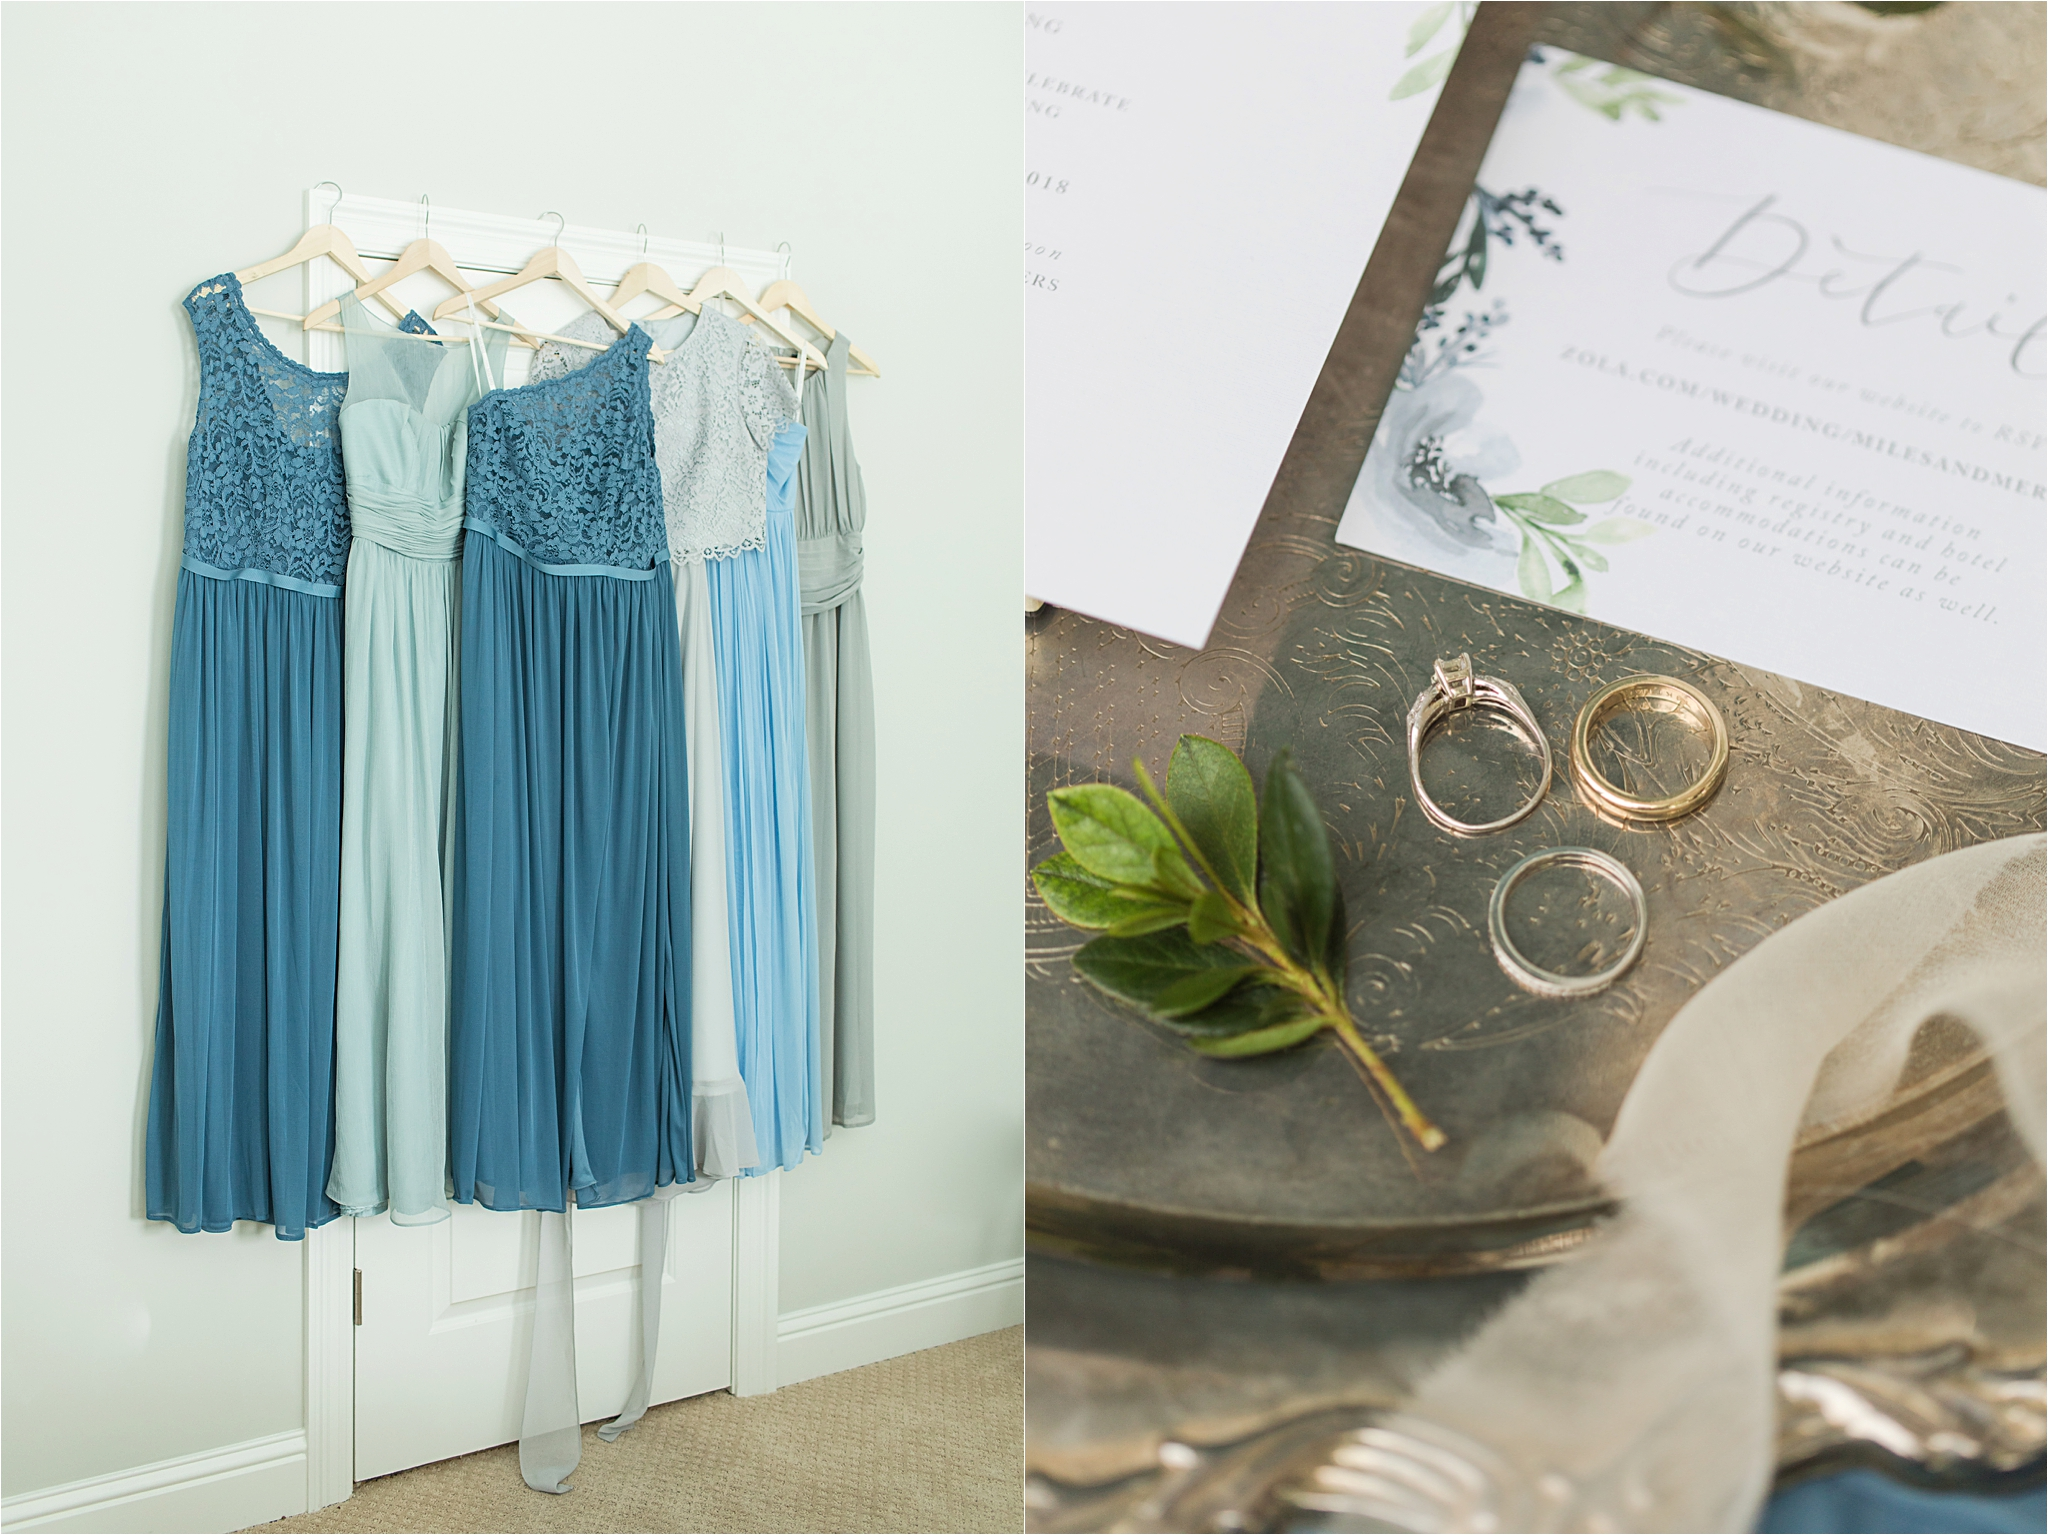 Wedding Details-Pastel Themed Wedding-The Chapel at the Waters-Montgomery Alabama Photographer-Miles & Meredyth-Blue Themed Wedding-Bridemaids Dresses-Wedding Rings